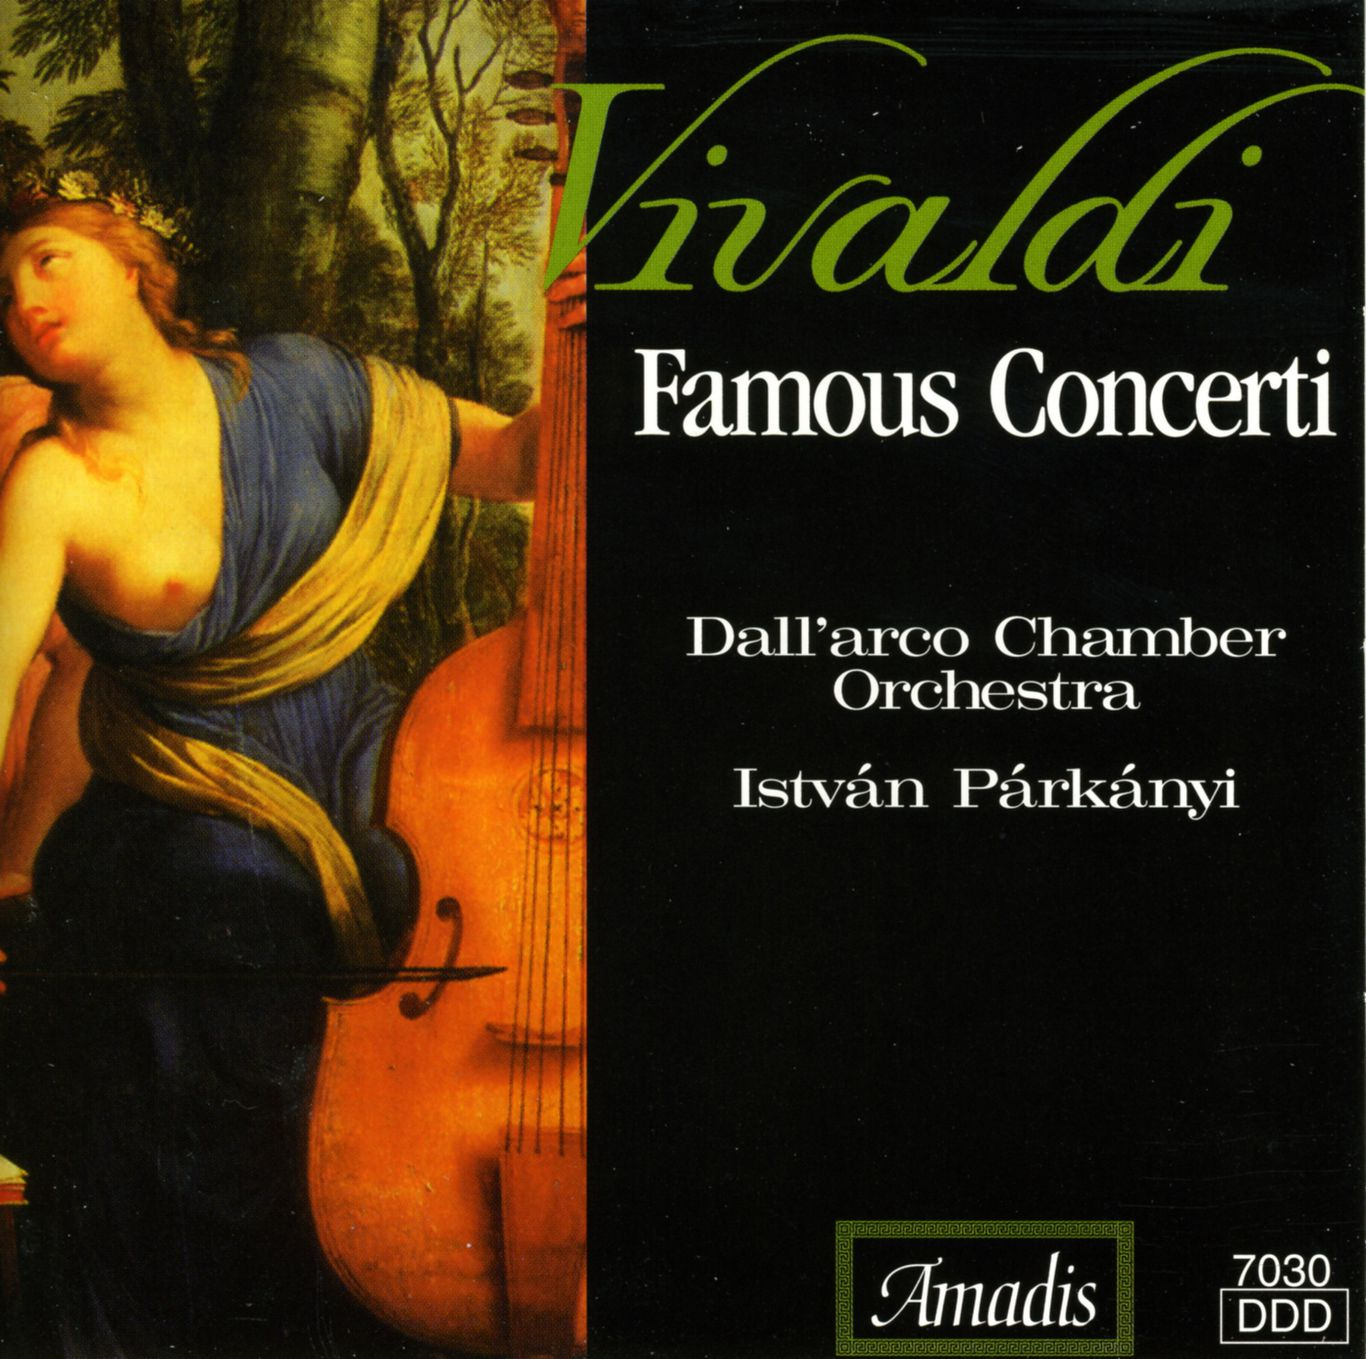 Chamber Concerto in D Major, RV 93 (arr  for lute and